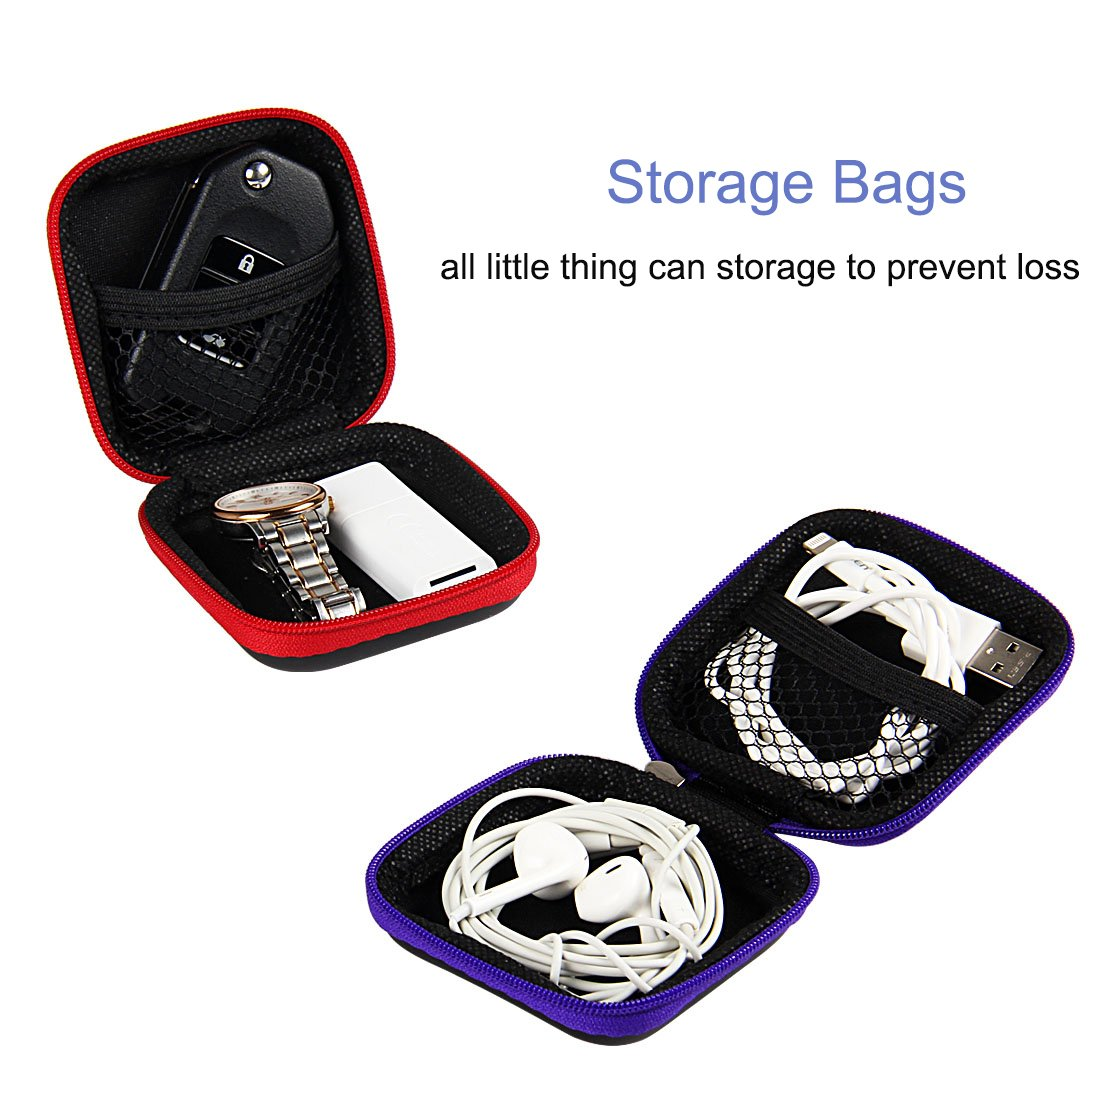 Earbud Carrying Case, ZMLM Mini Storage Pouch with Carabiner for Flash Drive Earphones Headphones USB Cable 4-Pack in 4 Colors